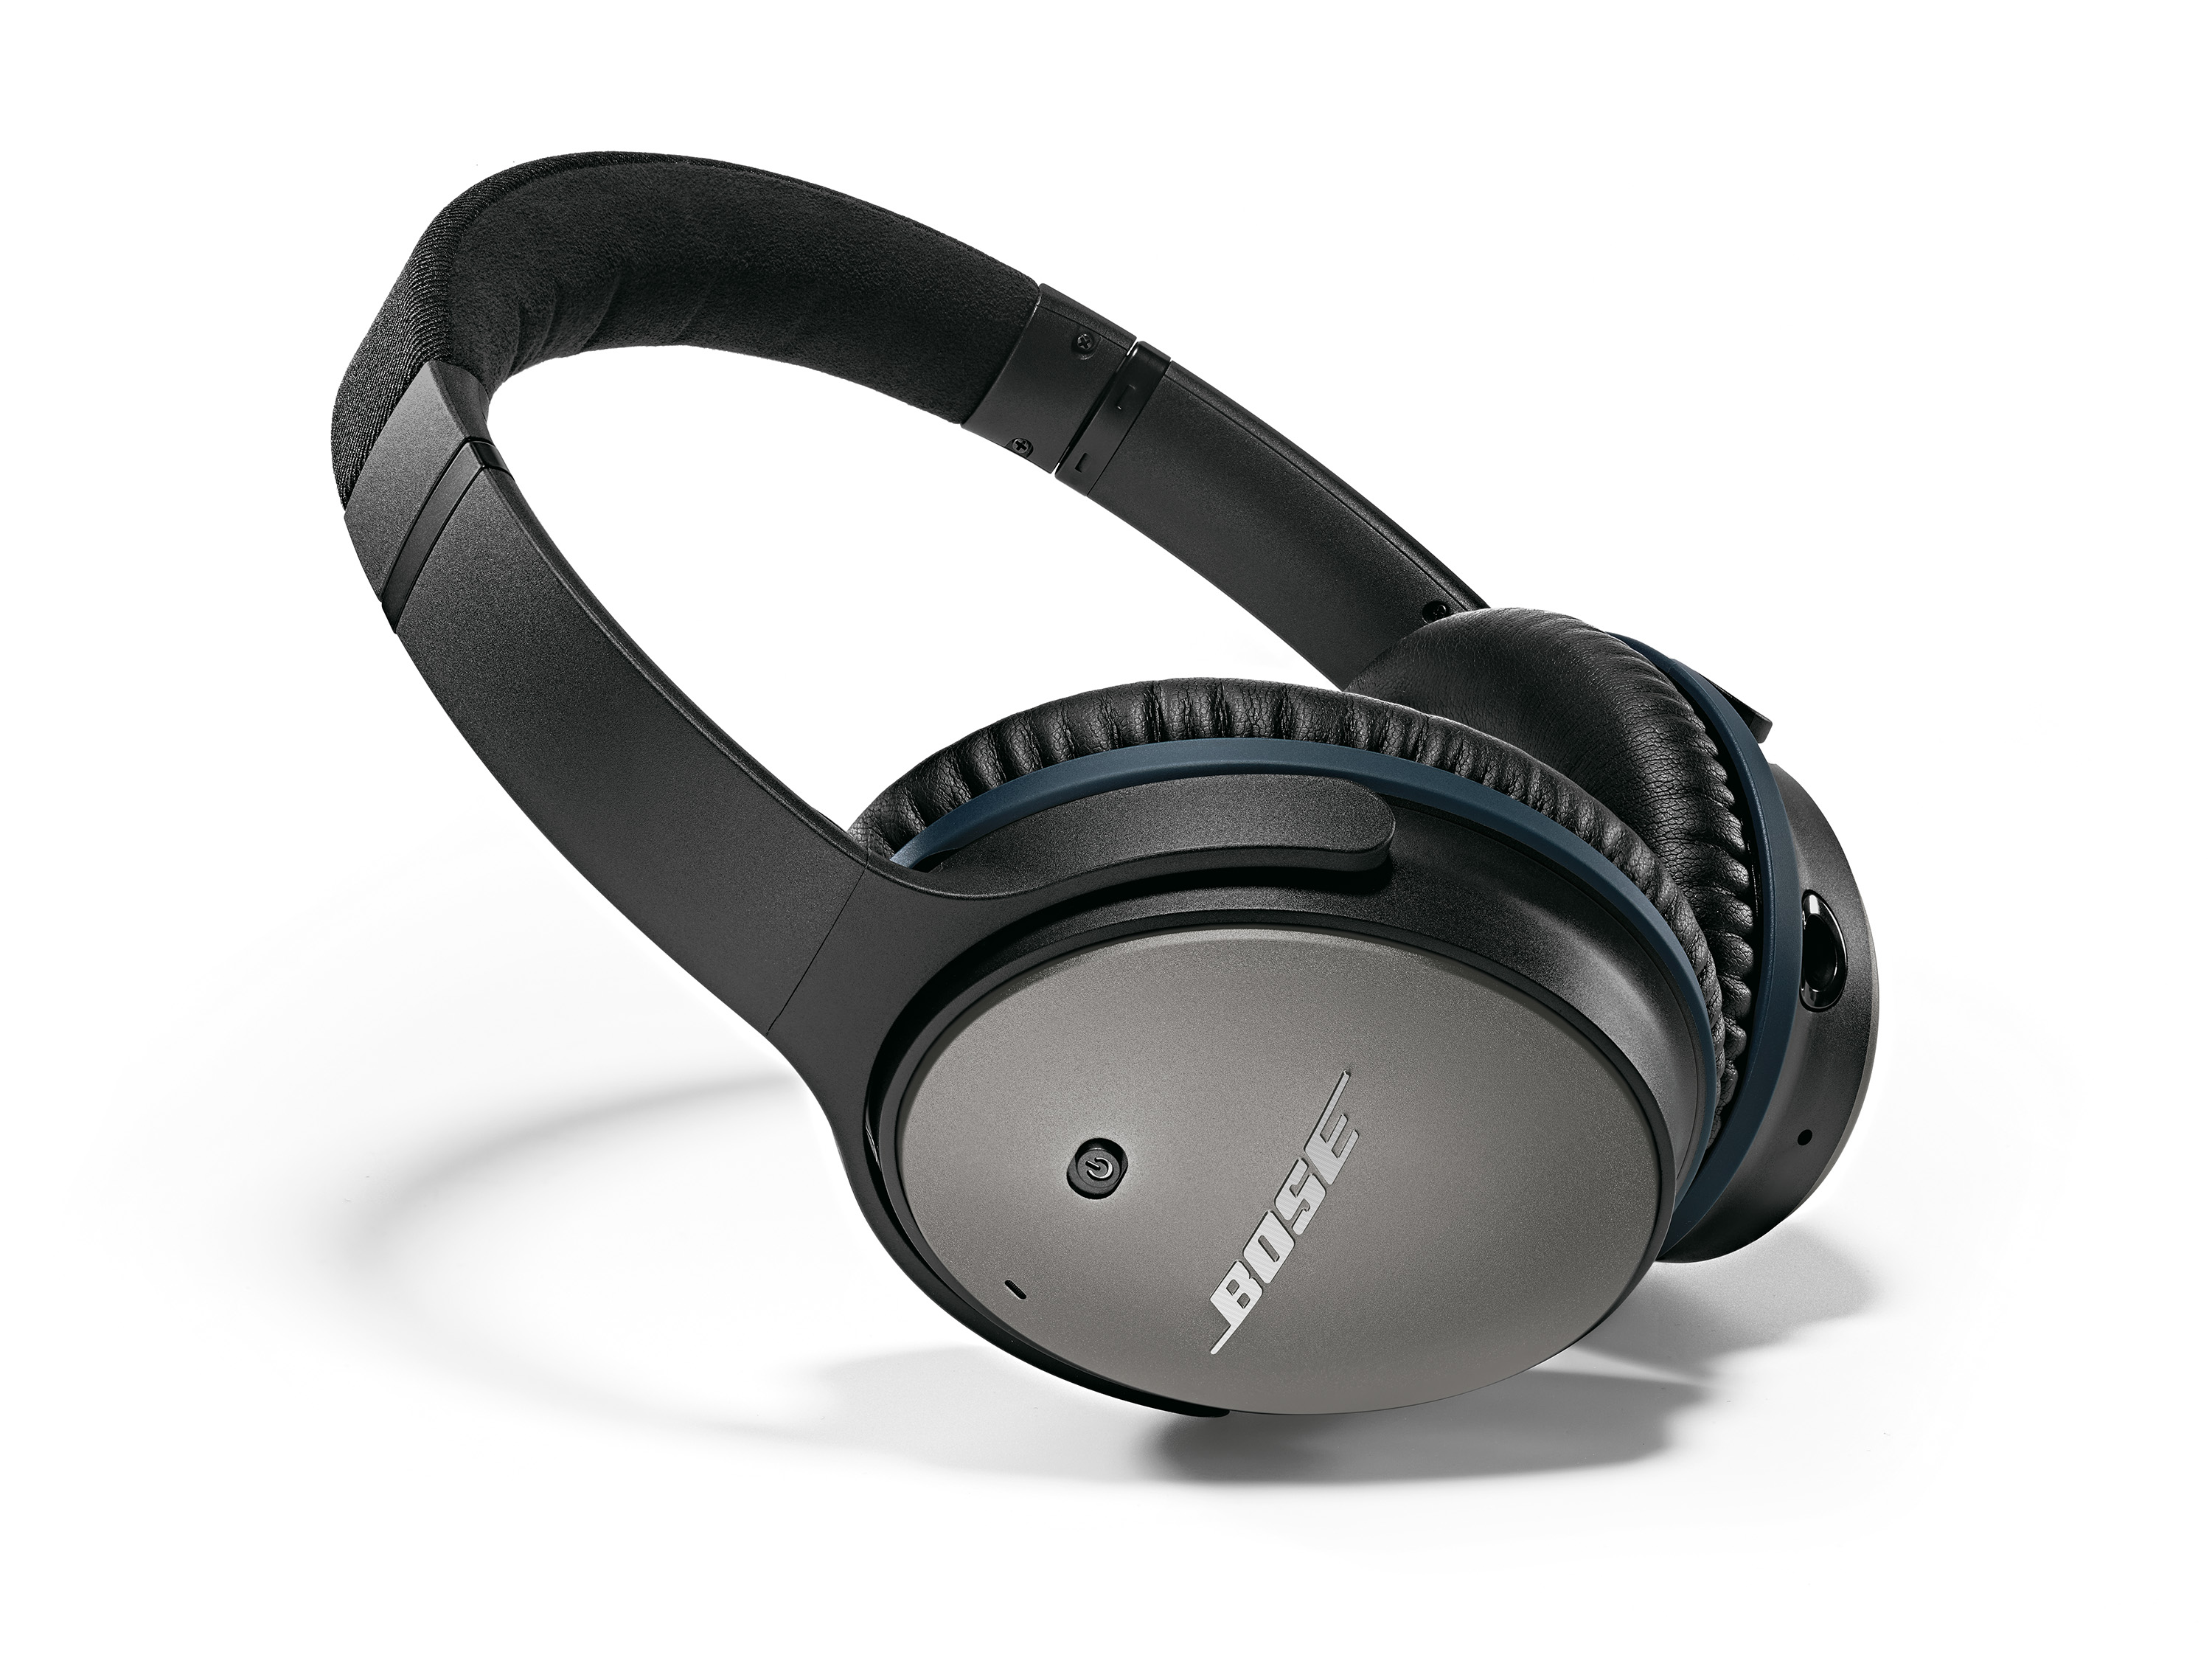 BOSE PRESENTA LE CUFFIE QUIETCOMFORT 25 ACOUSTIC NOISE CANCELLING